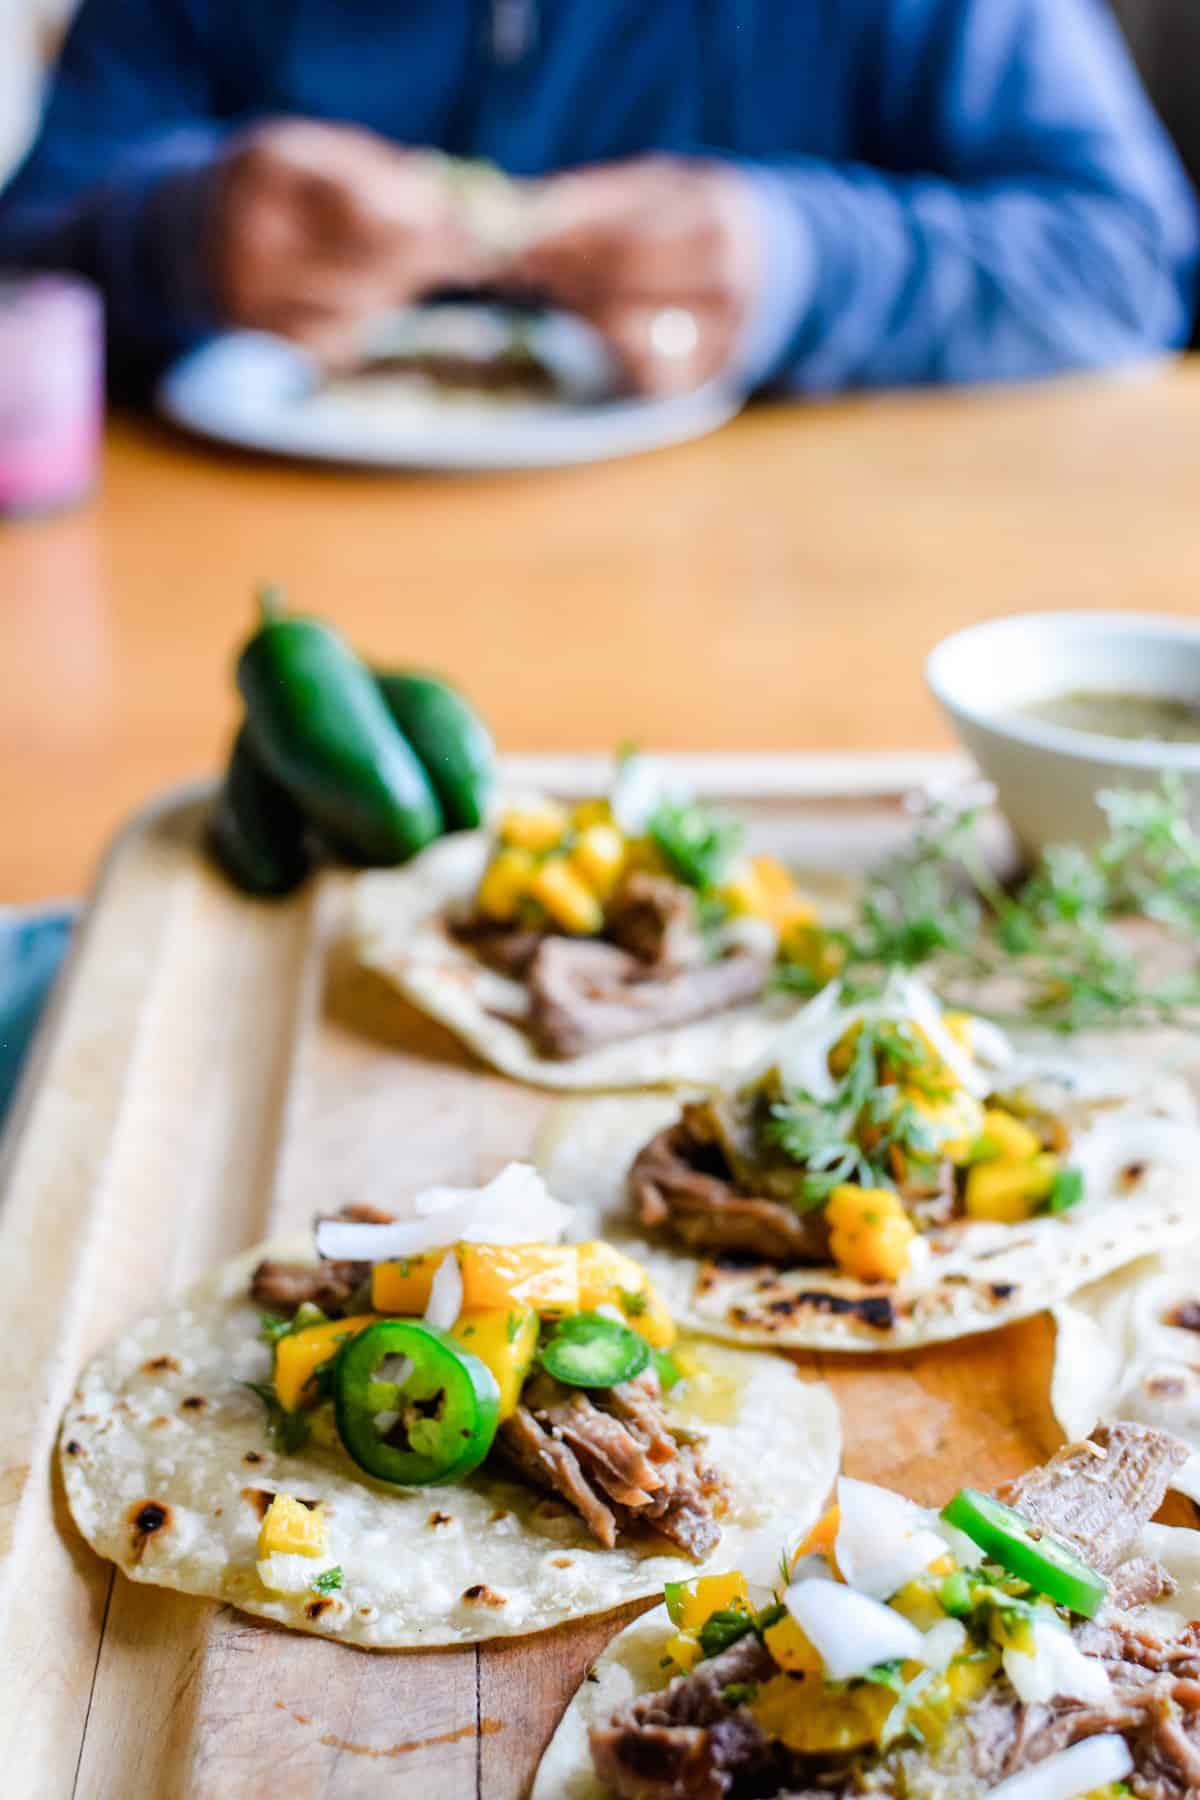 Several beef tacos sitting on a wooden cutting board with a man eating tacos sitting in the background out of focus.